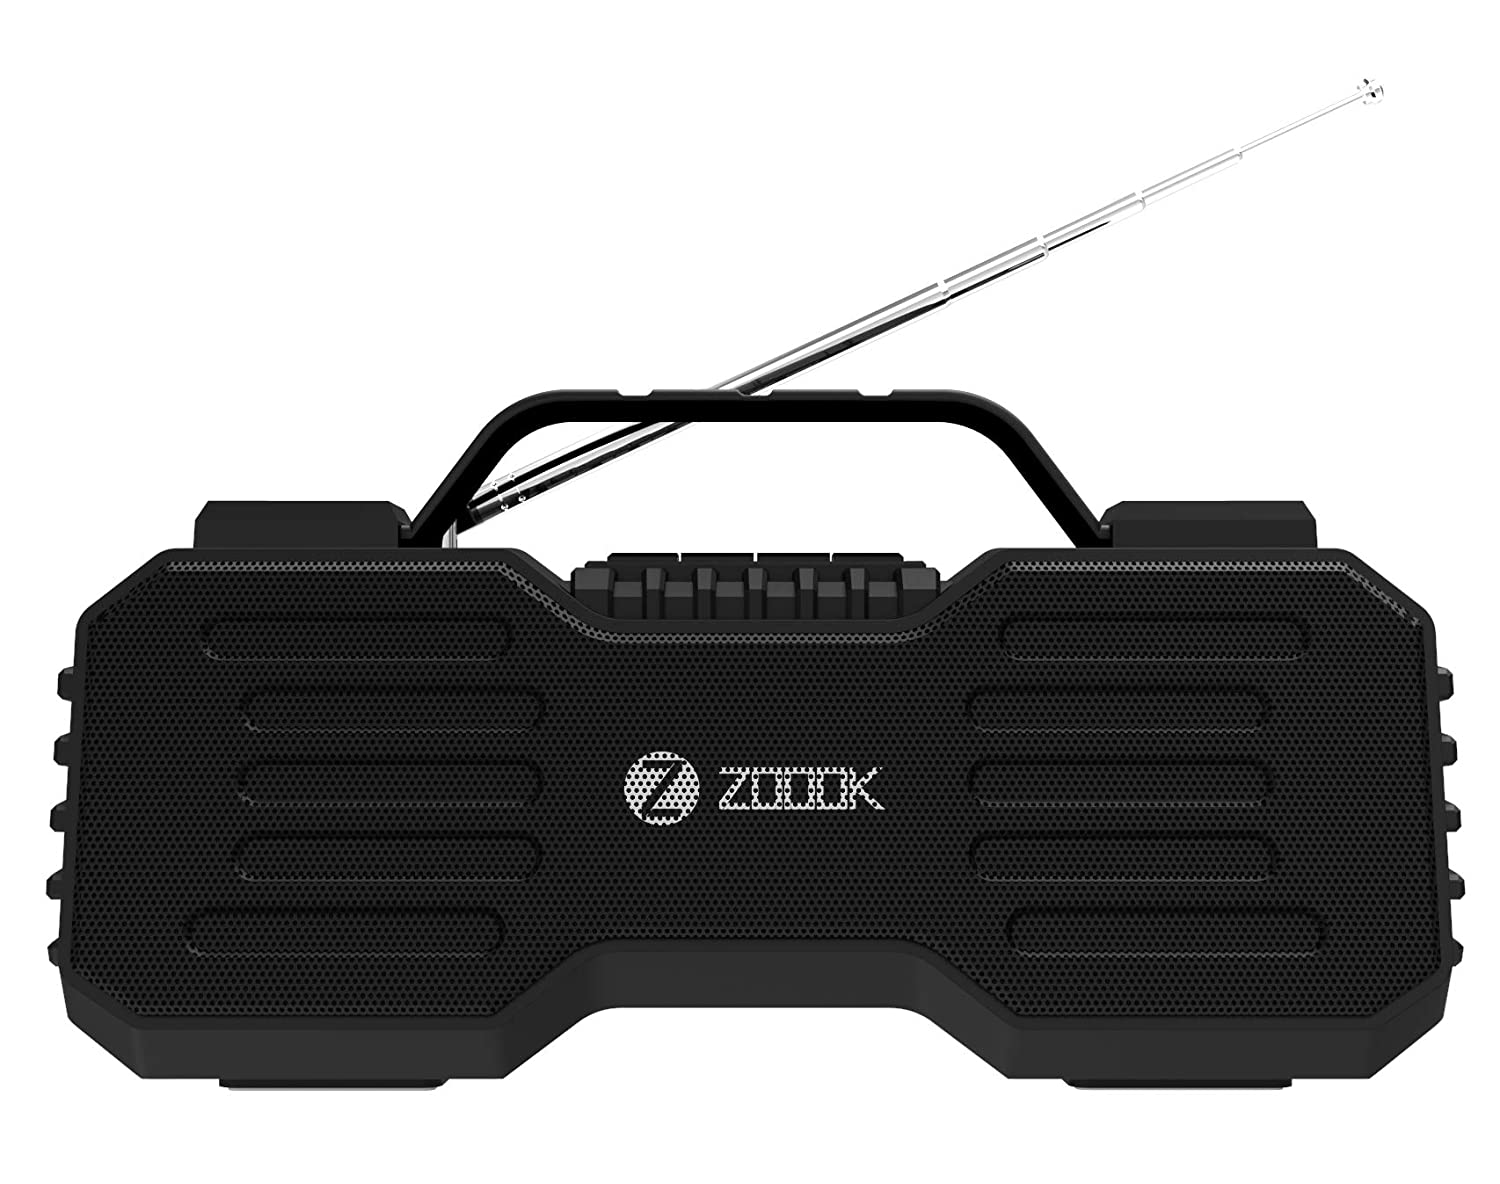 Zoook Rocker Boombox Atom Portable Wireless Bluetooth Speaker Cum Radio FM